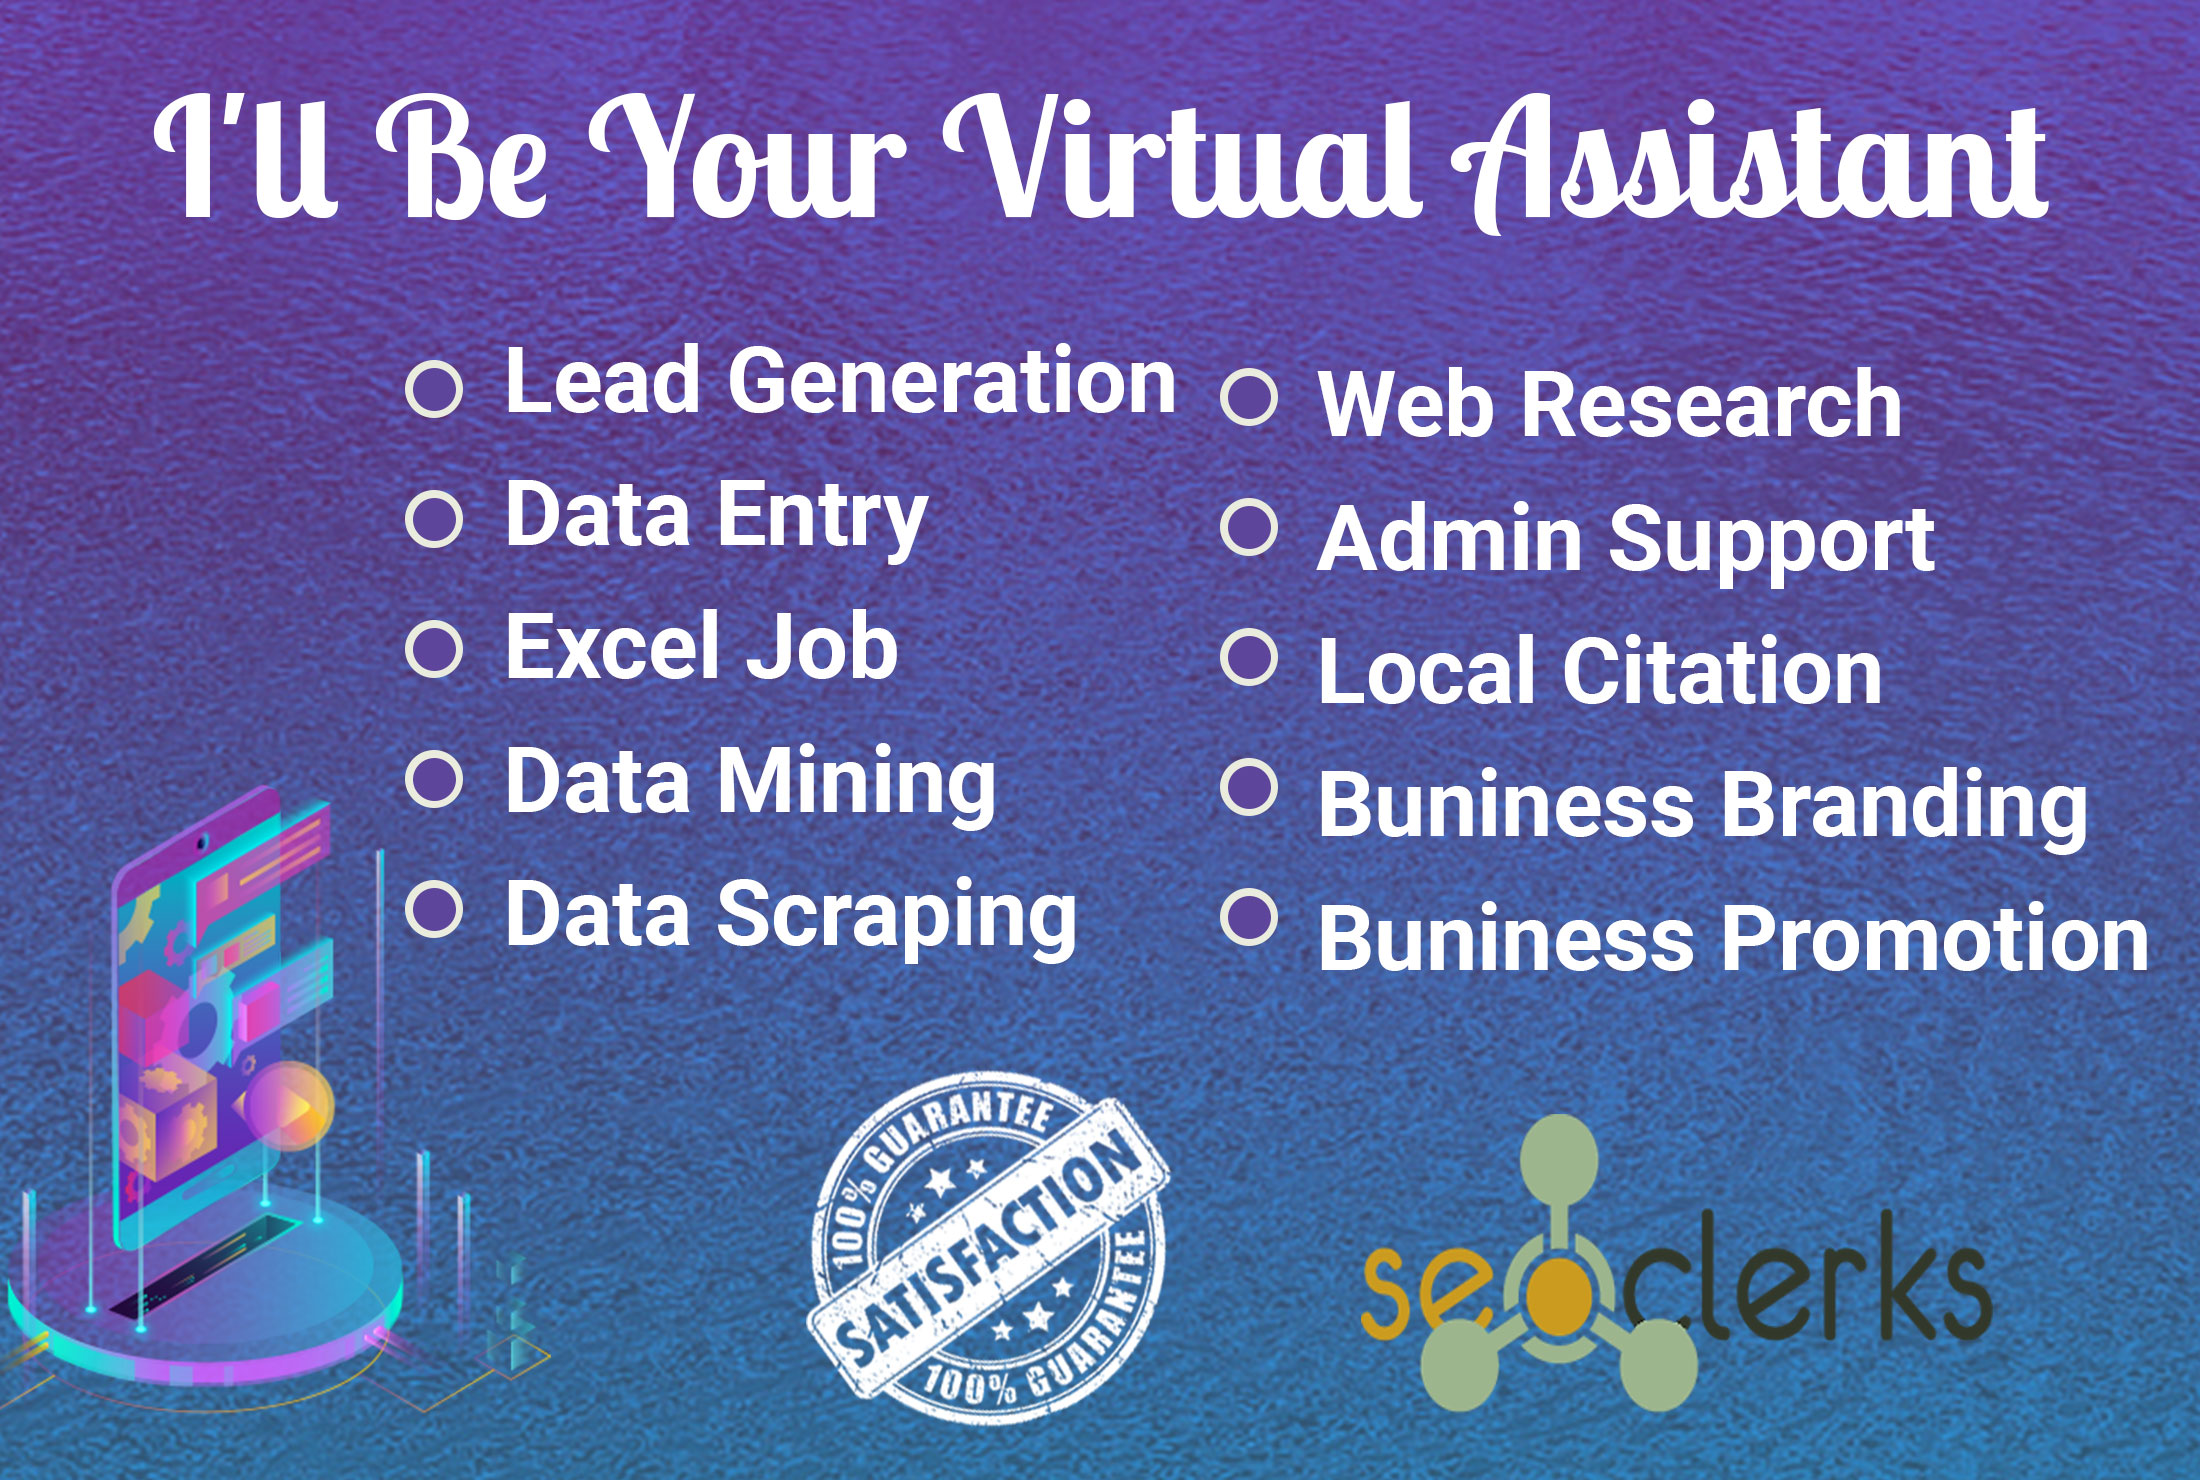 I will be your professional & perfect virtual assistant for any job